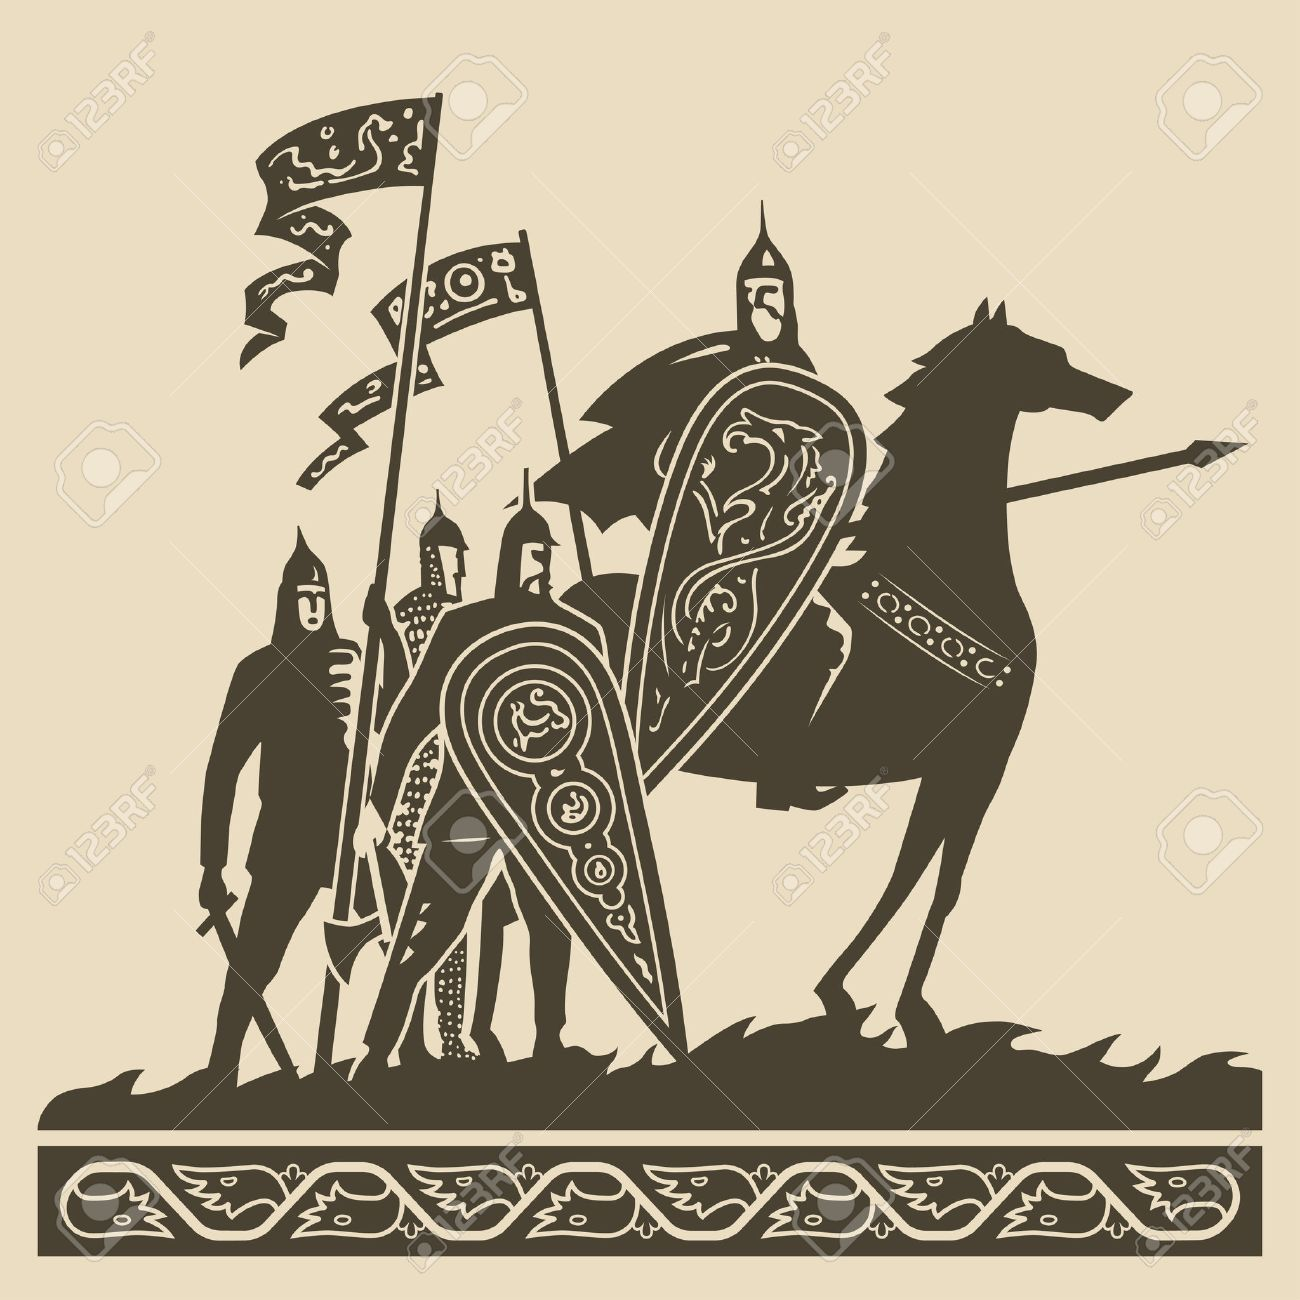 Medieval knights in full armor with large decorated shields and waving standards standing on the battlefield awaiting of the battle vector illustration - 30442653